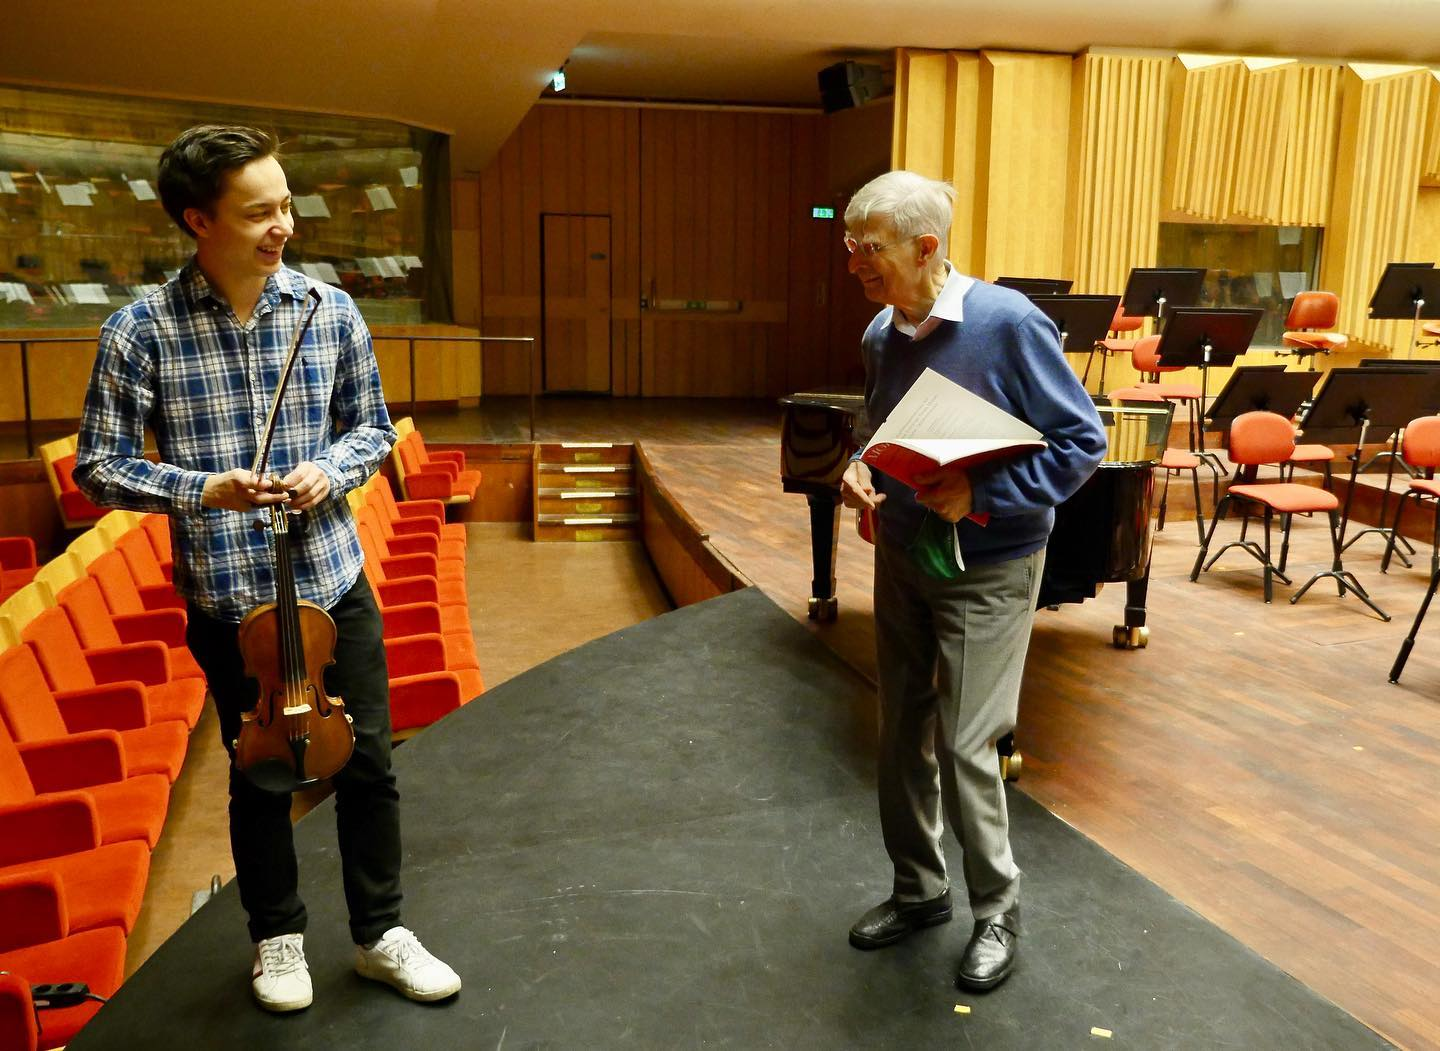 Herbert Blomstedt explains why Finns conduct better than Swedes